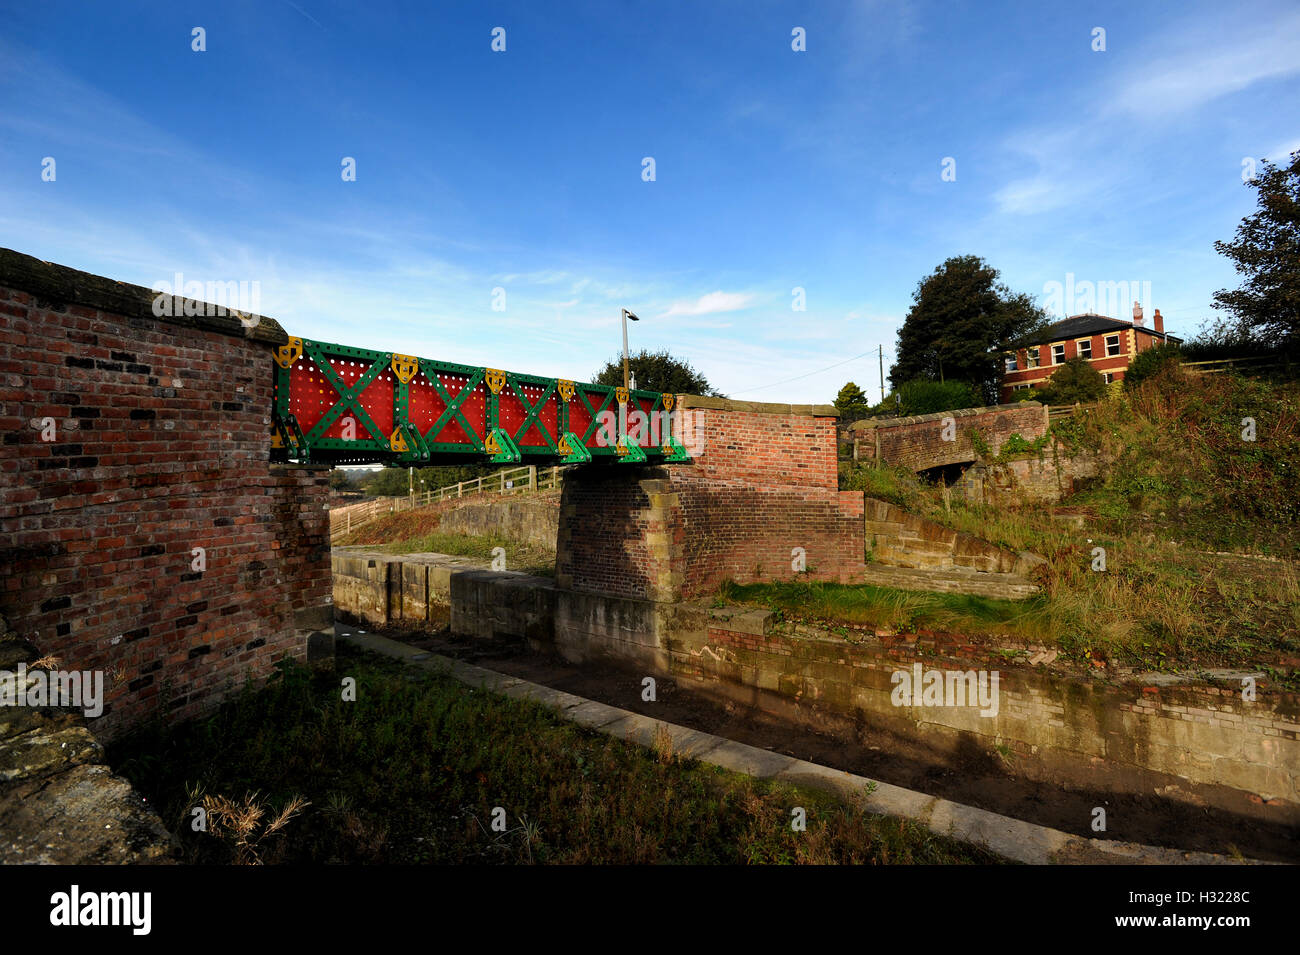 The newly installed 'Meccano' bridge overlooks continuing restoration work on the Manchester, Bolton and - Stock Image